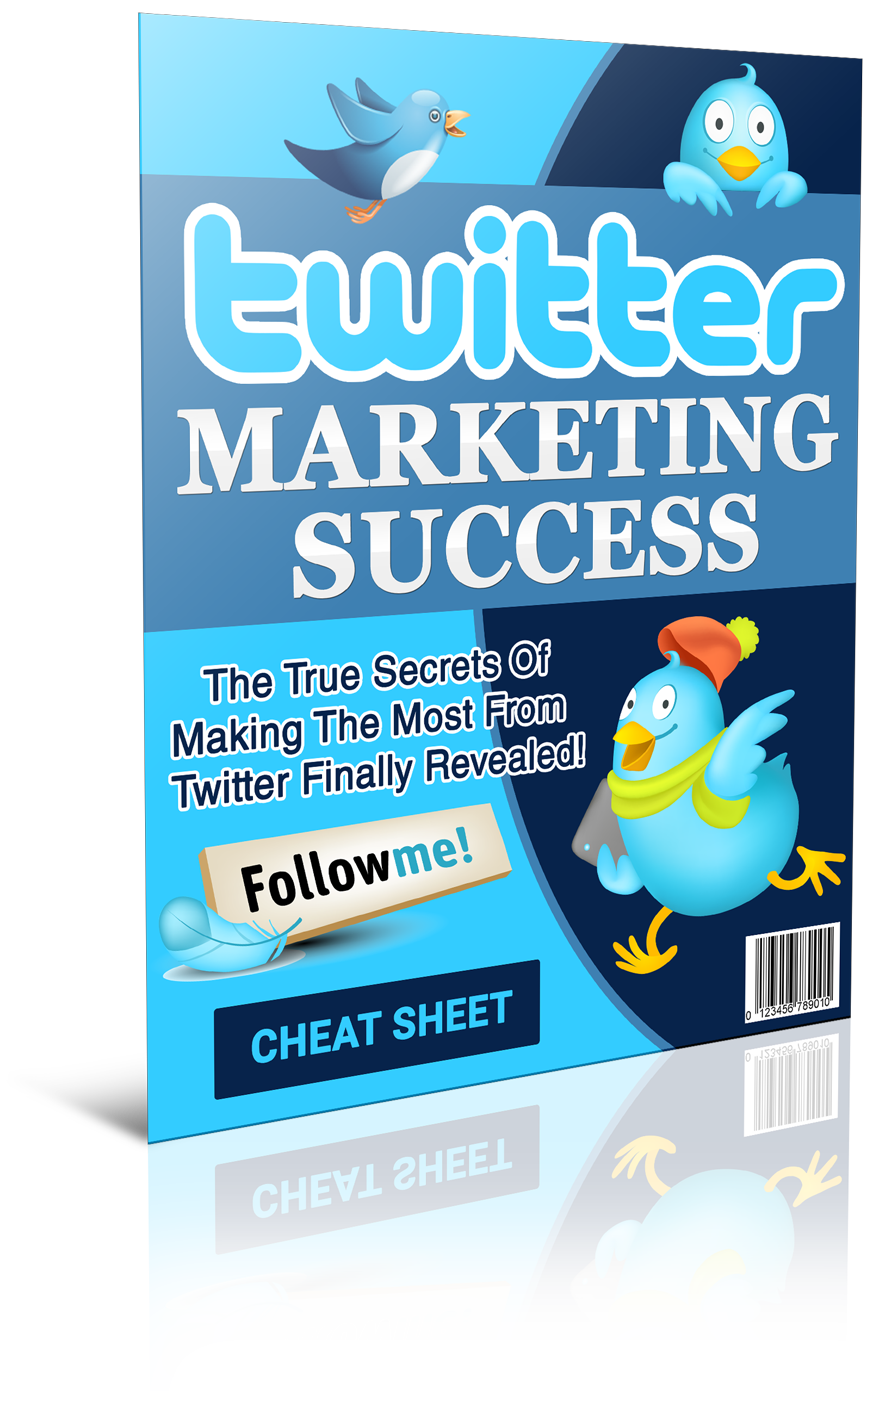 Twitter Marketing Success Resource Cheat Sheet